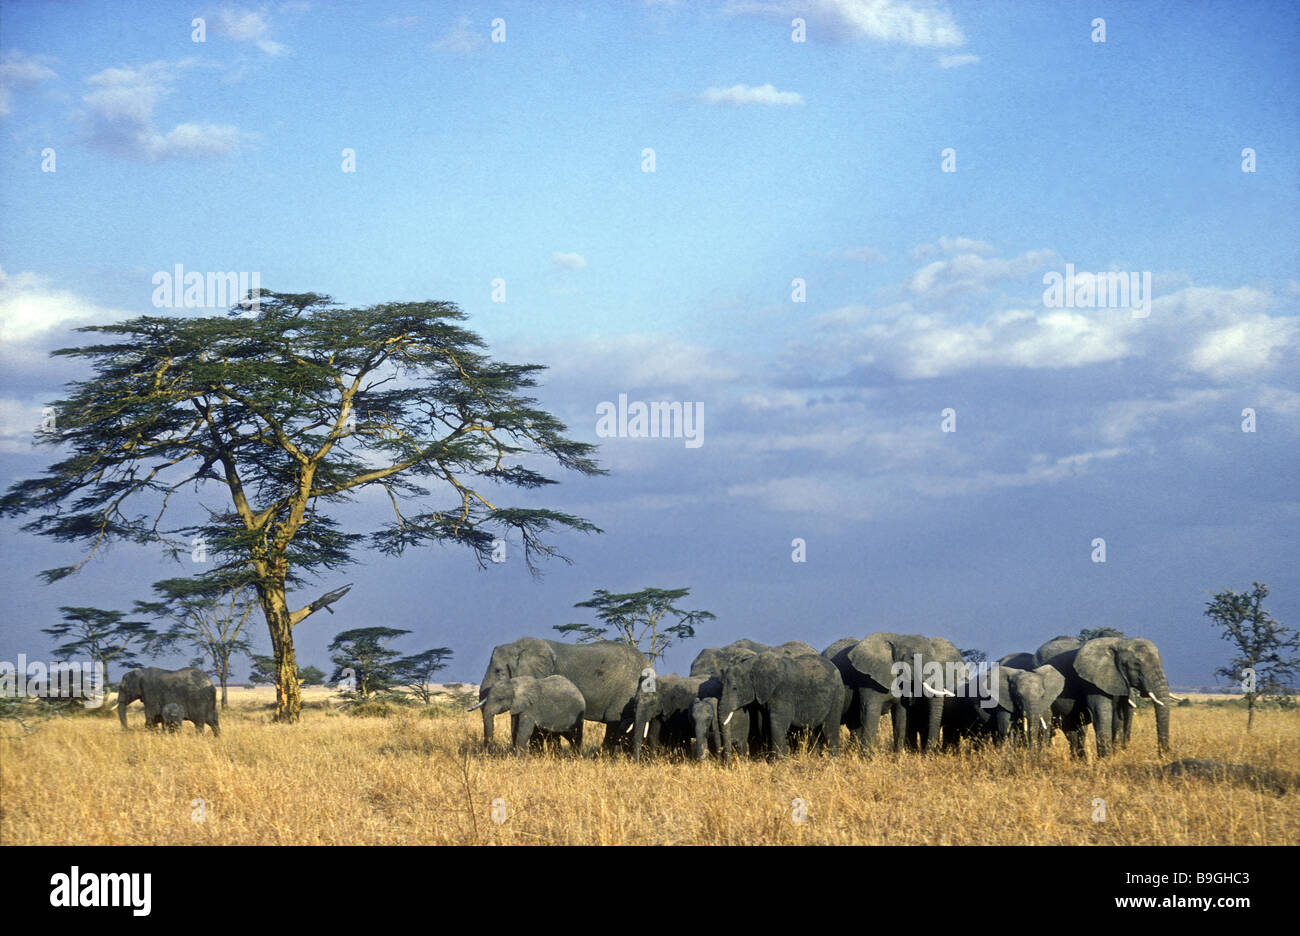 Elephant herd in the Serengeti National Park Tanzania East Africa The adult females have formed a circle to protect - Stock Image